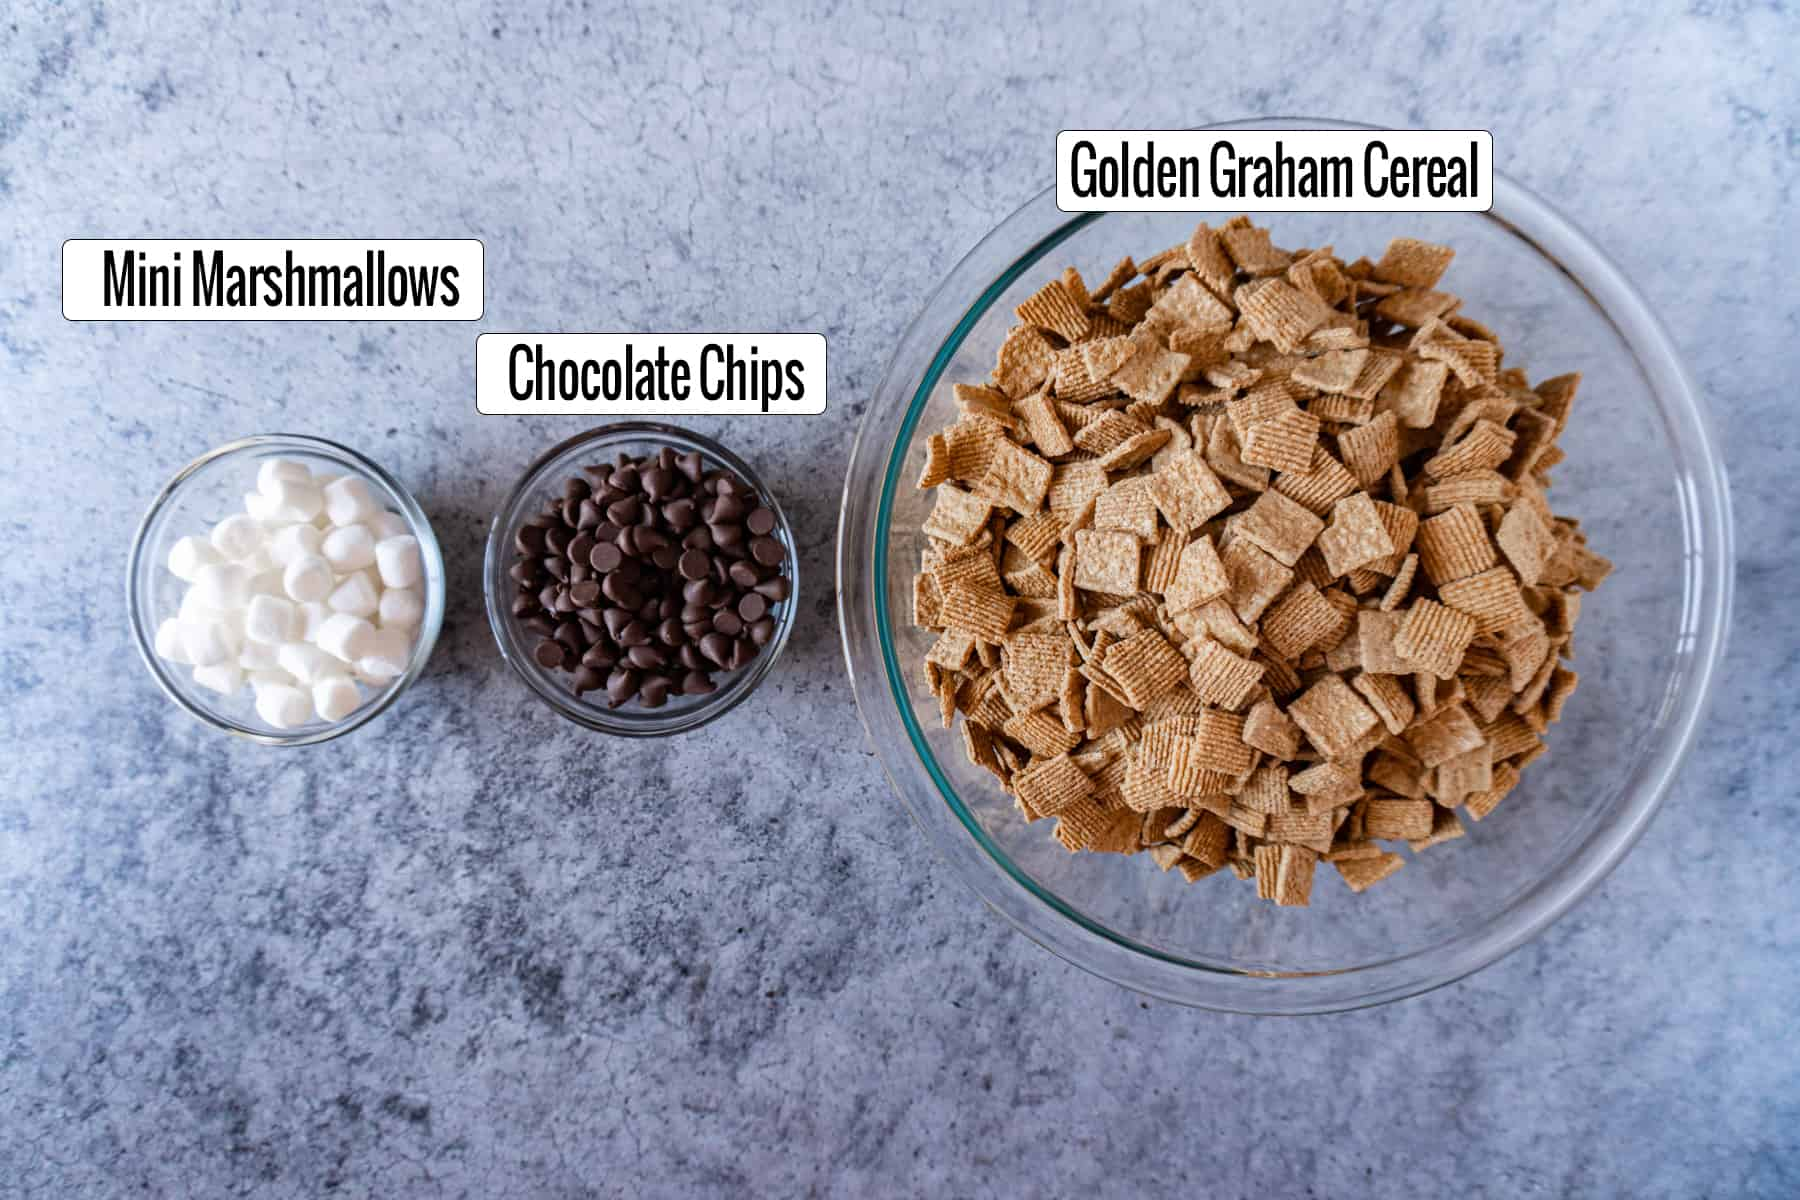 ingredients in bowls- golden graham cereal, chocolate chips, marshmallows